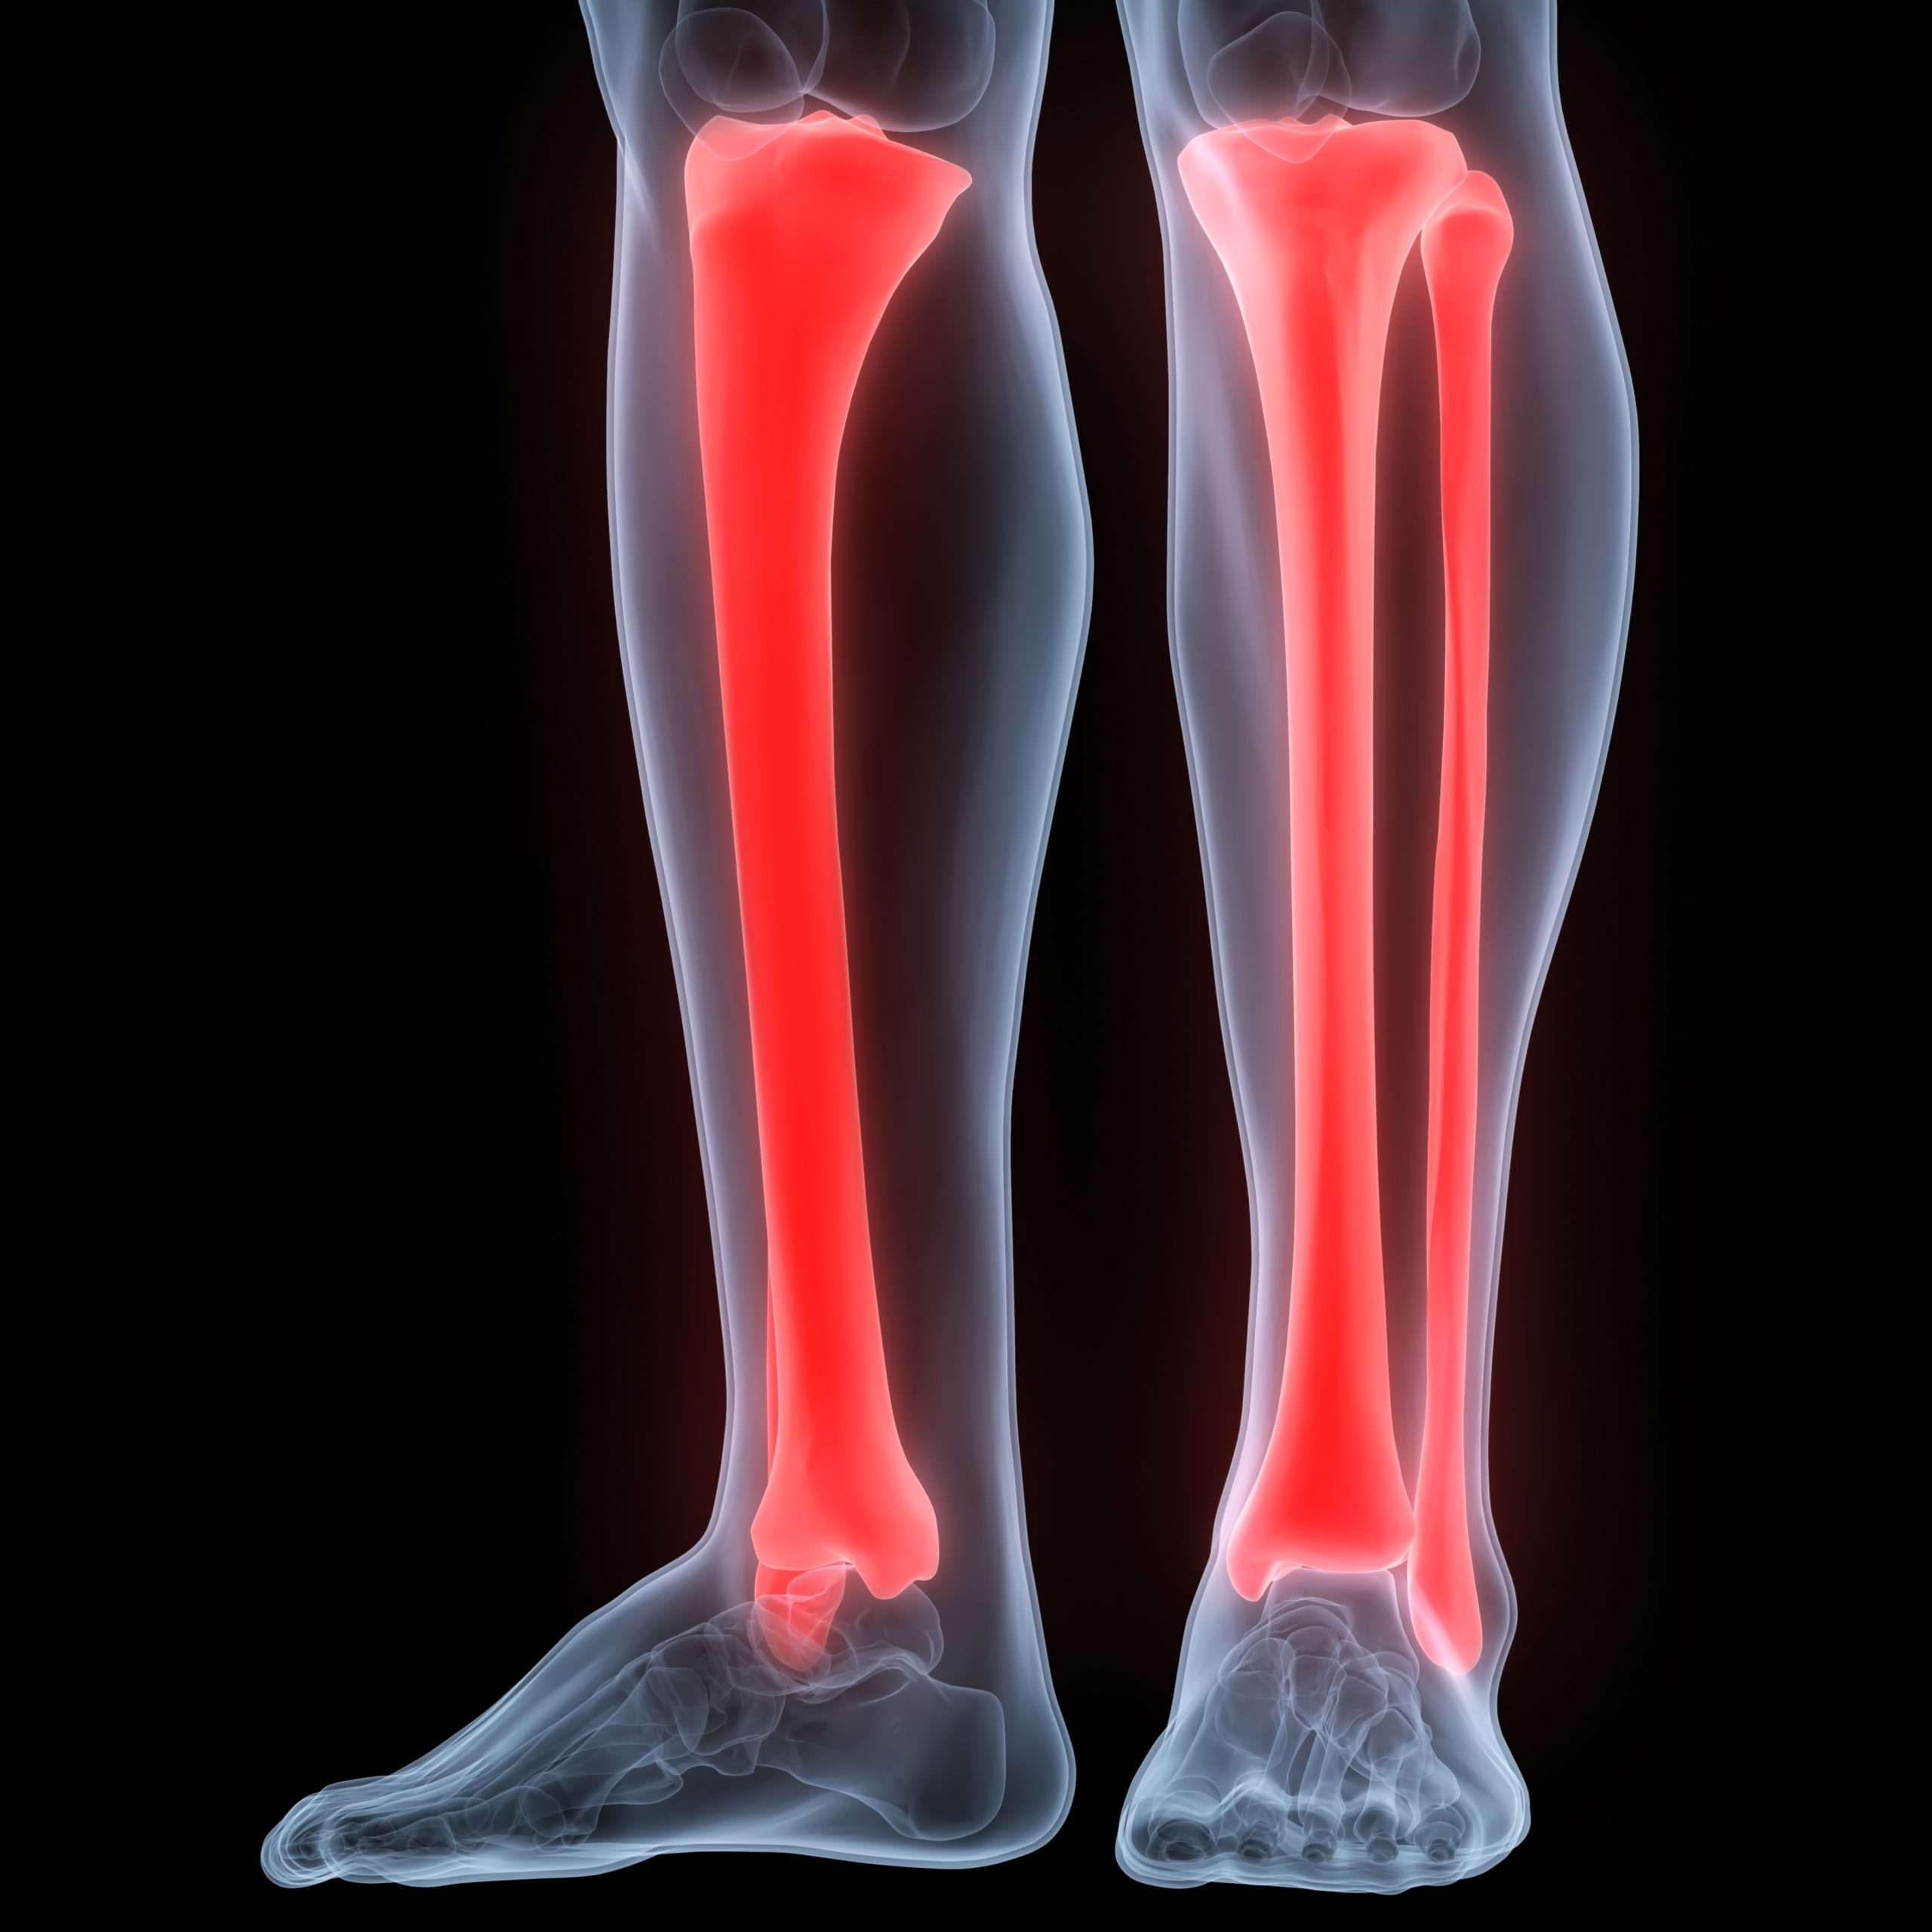 A tibia fracture after a car accident is a serious injury